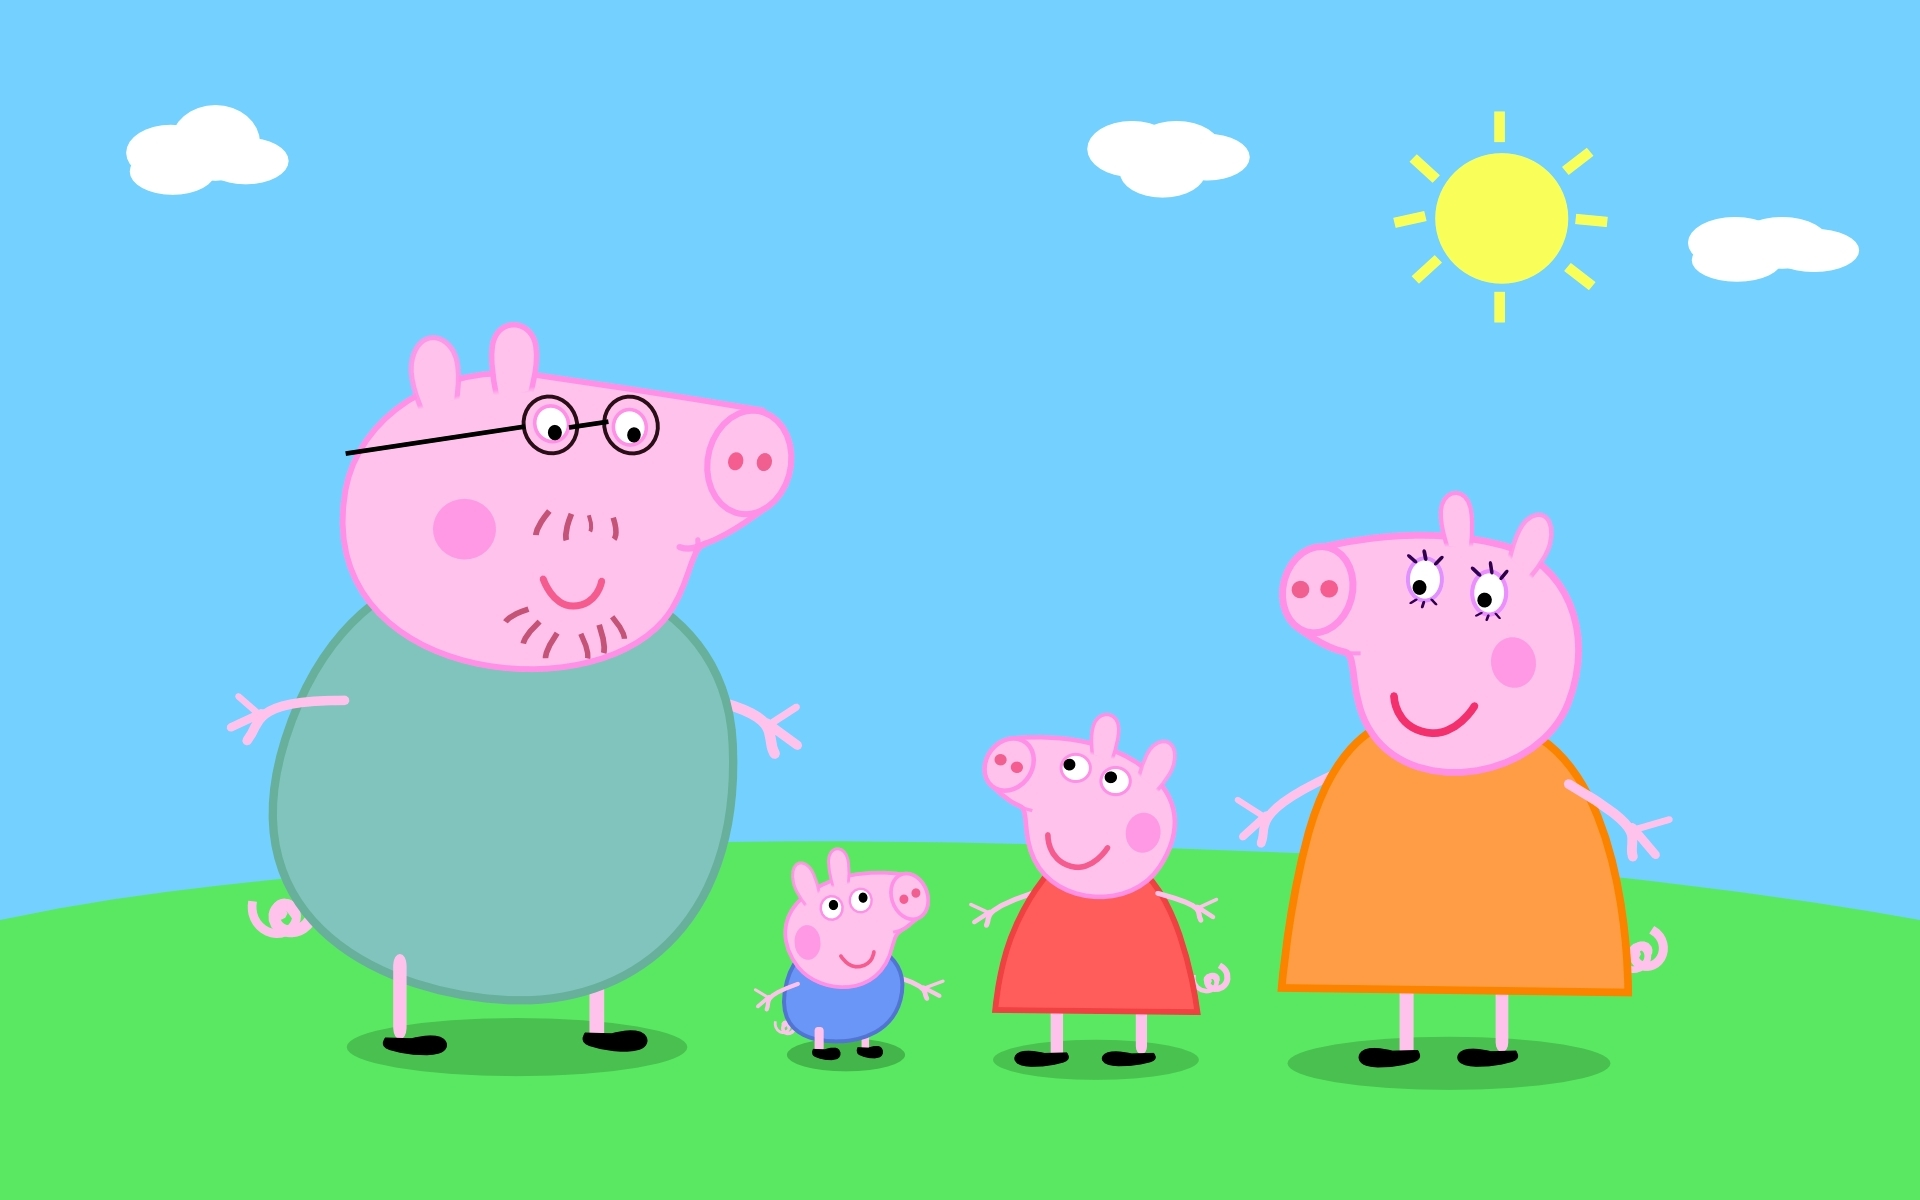 Peppa pig gallery free images at clker vector clip art peppa pig gallery image voltagebd Images